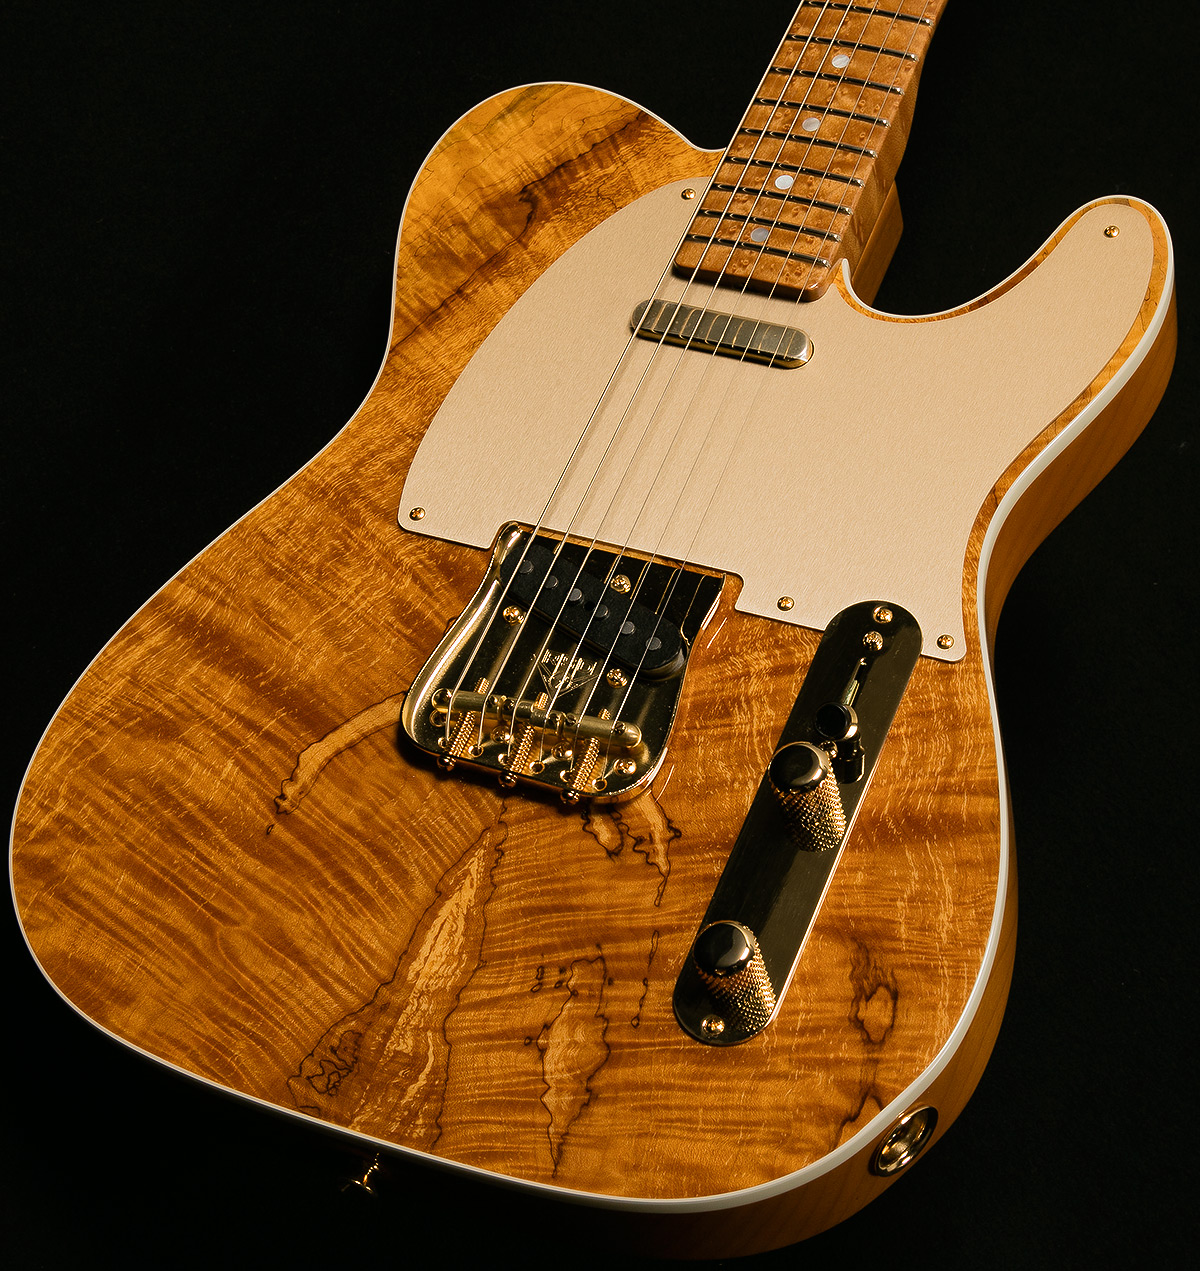 custom collection artisan telecaster spalted maple custom collection artisan series. Black Bedroom Furniture Sets. Home Design Ideas